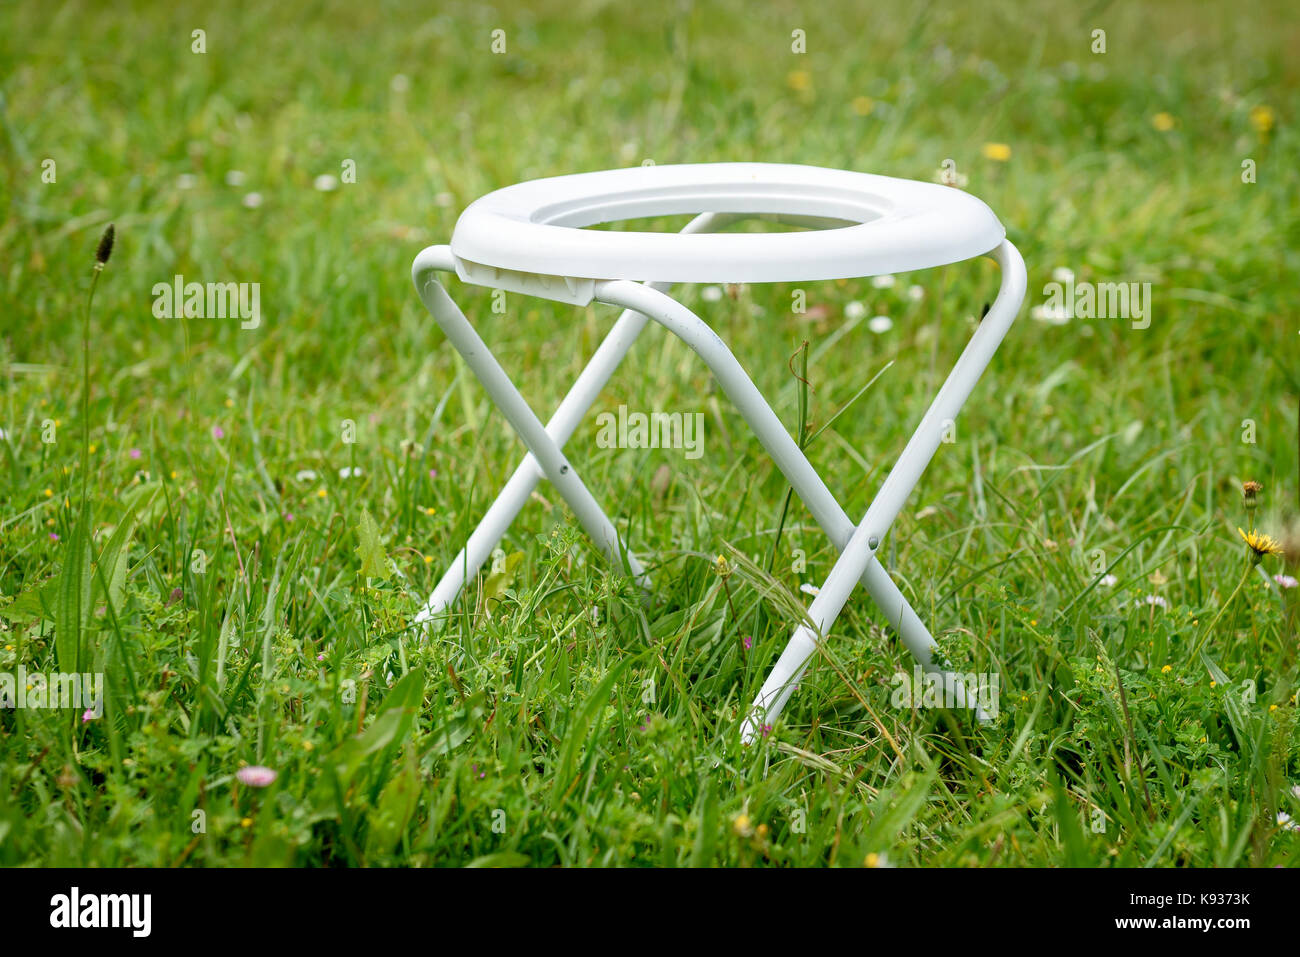 Portable Camping Toilet : Portable folding camp toilet outdoors in the grass. camping or motor